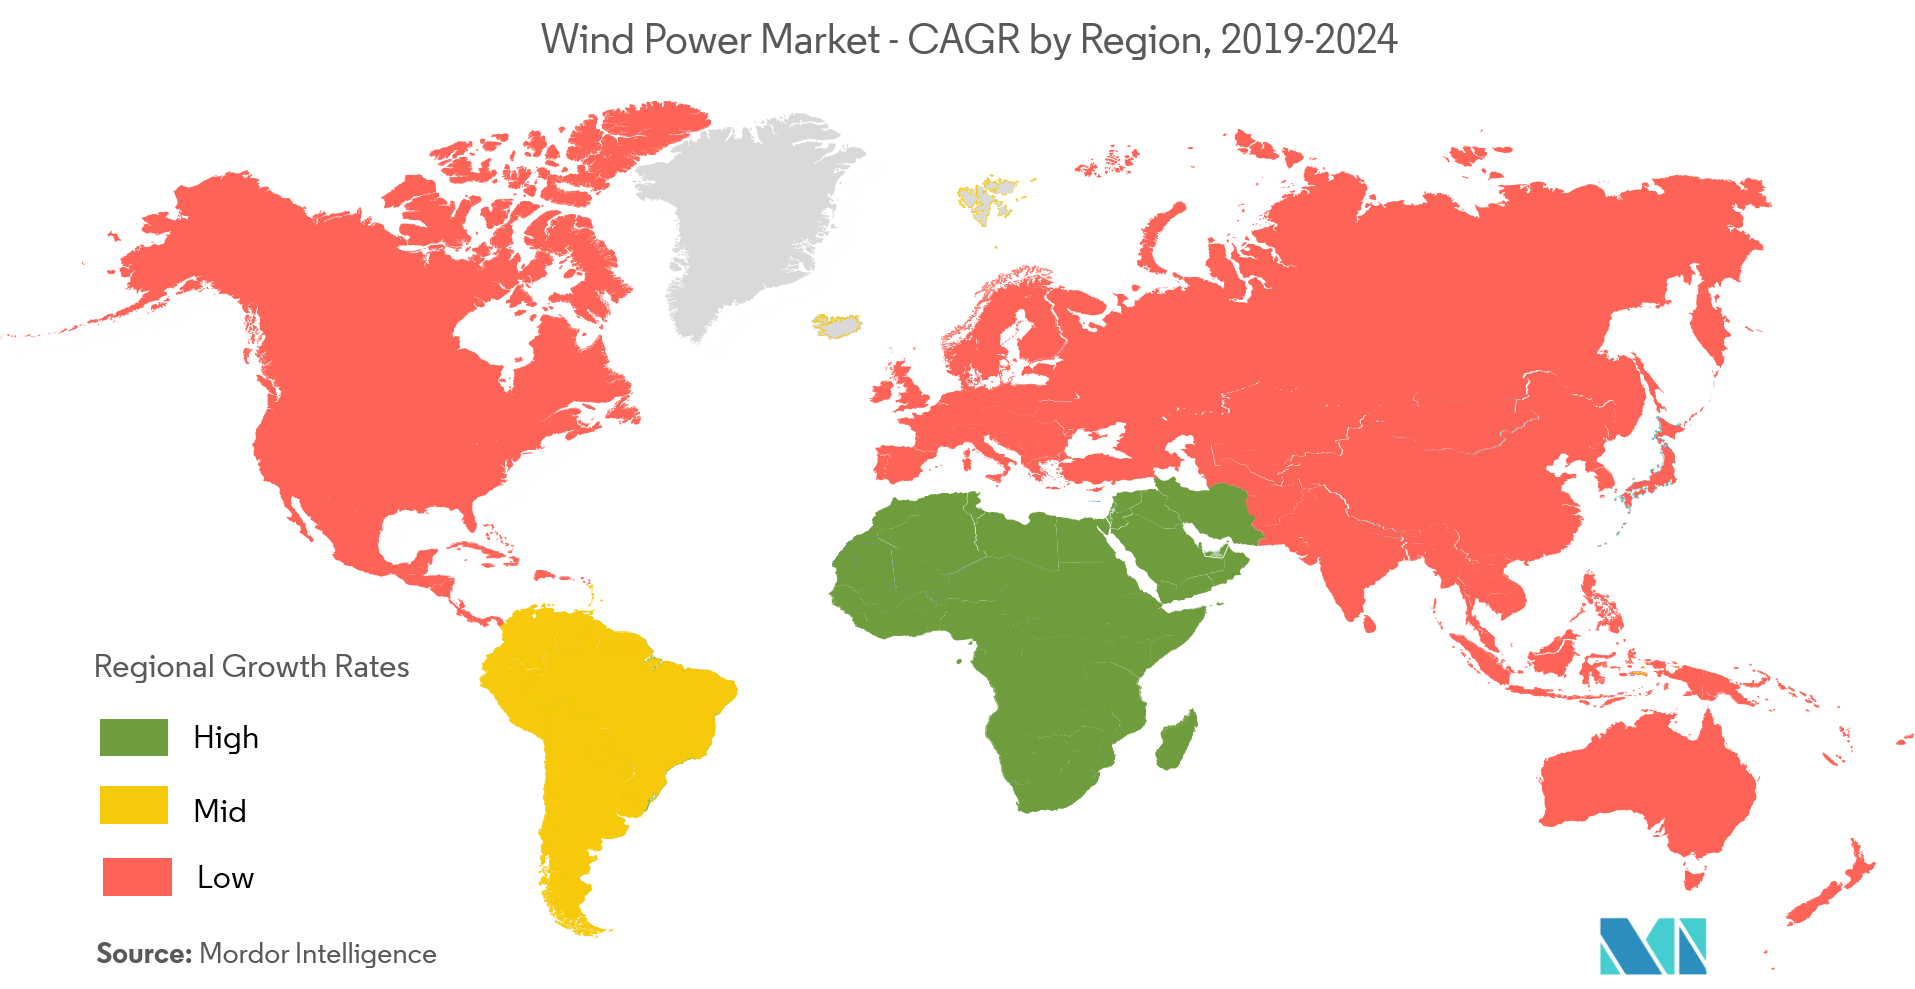 Wind Power Market - Regional